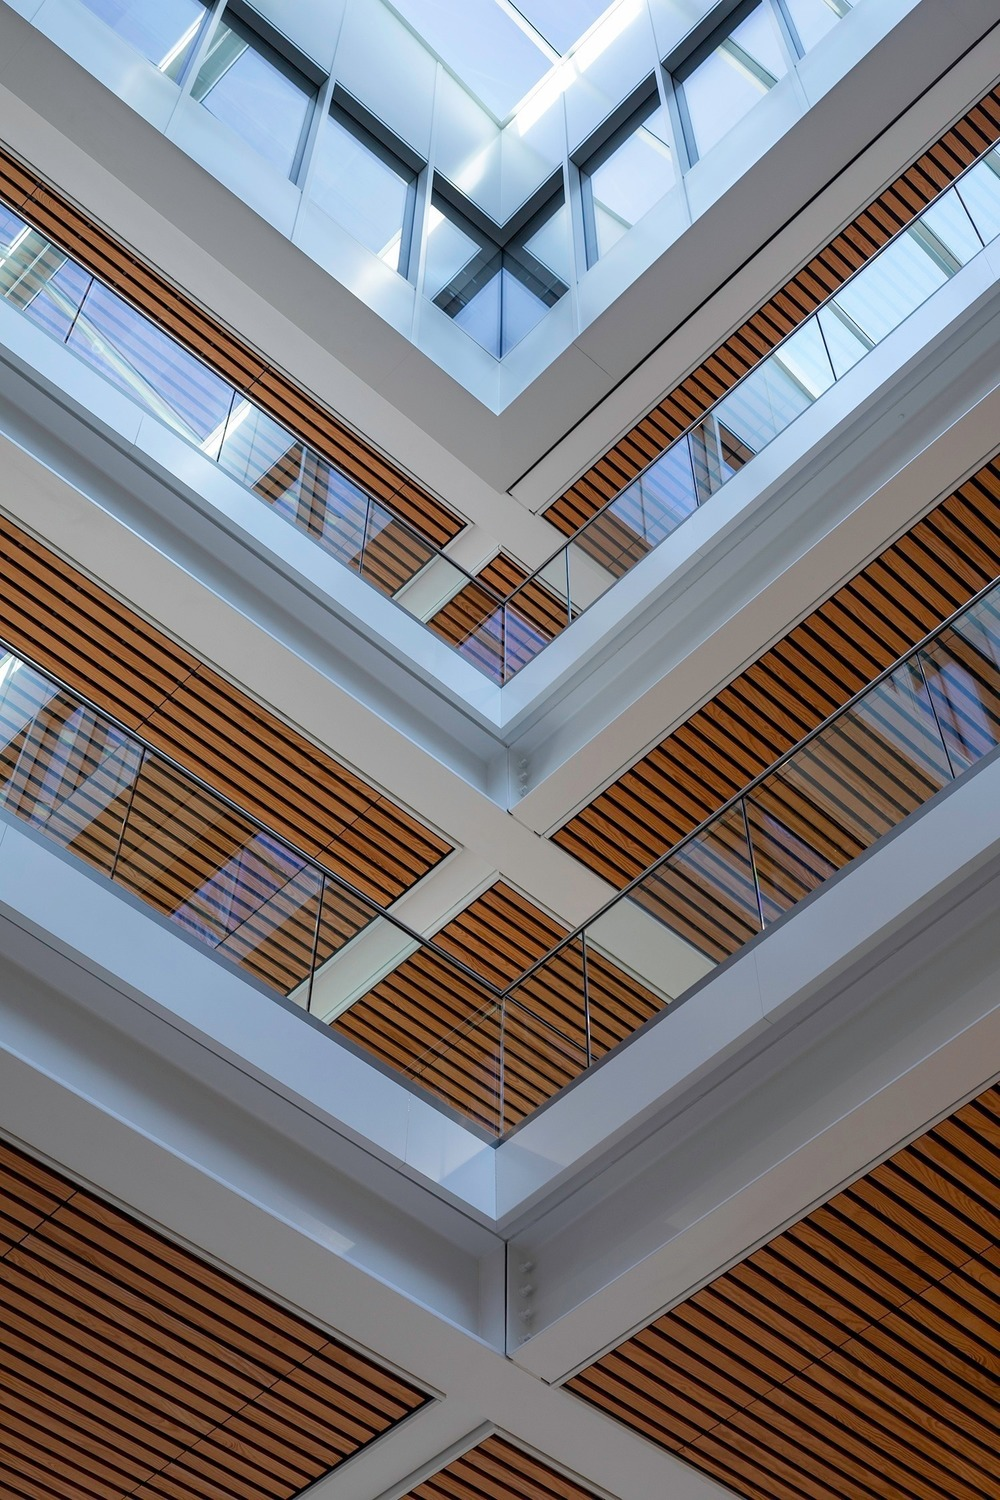 Internal light filled atrium connects the spaces and provides a focal point